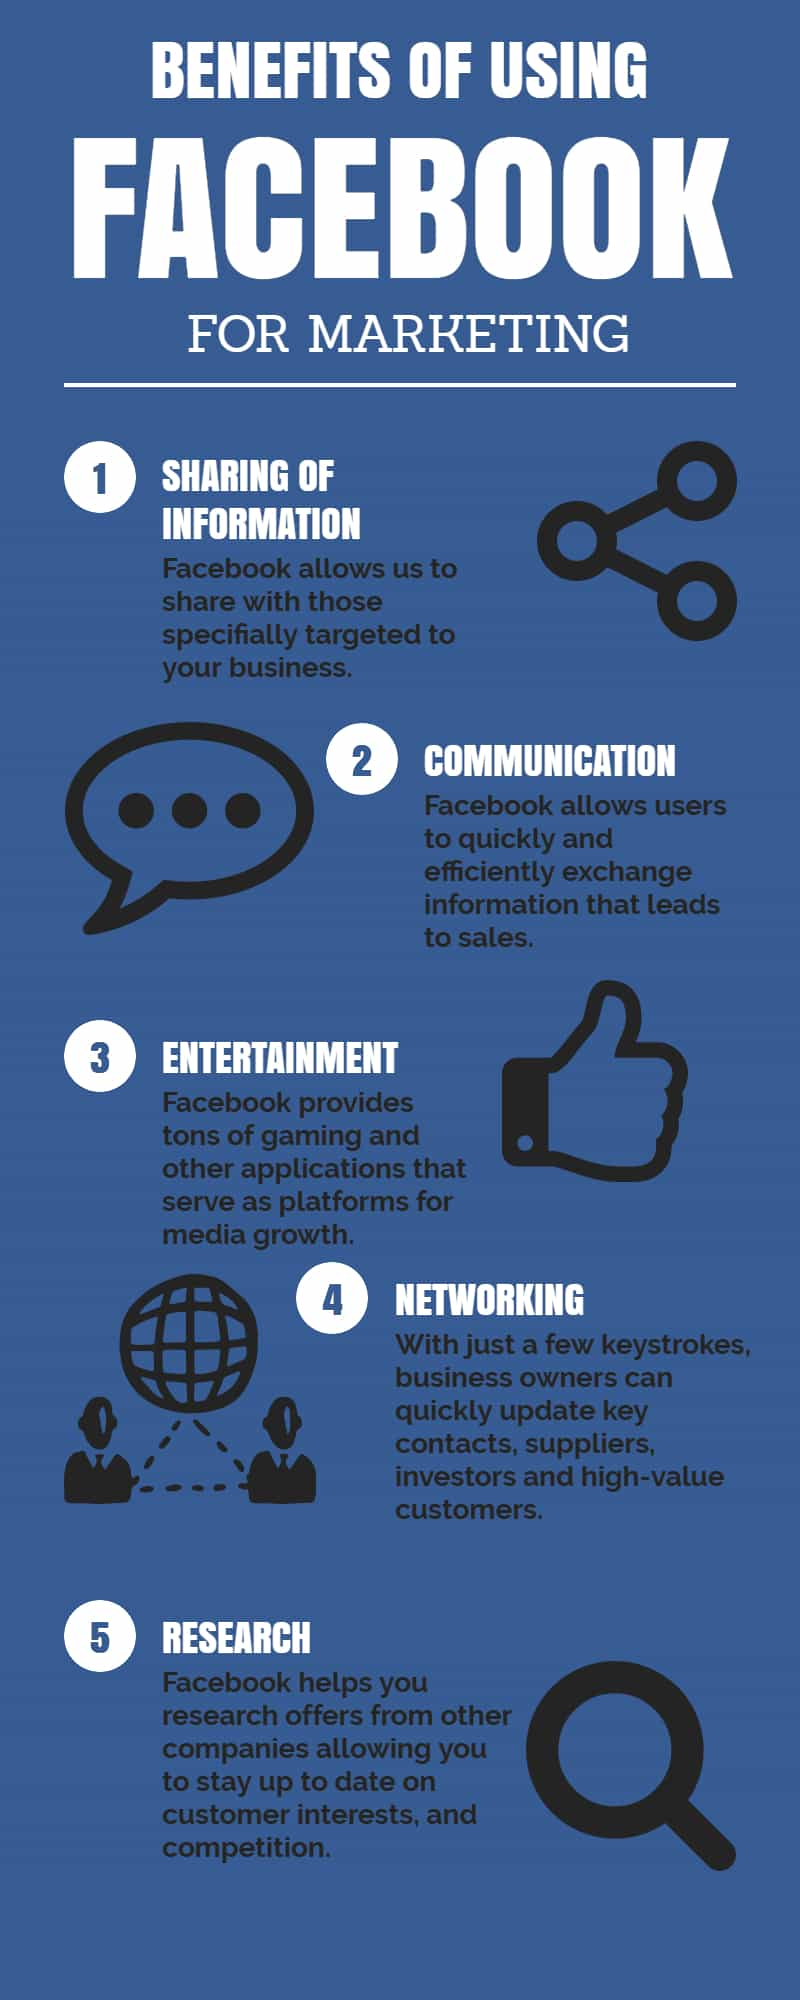 Benefits Of Using Facebook For Marketing